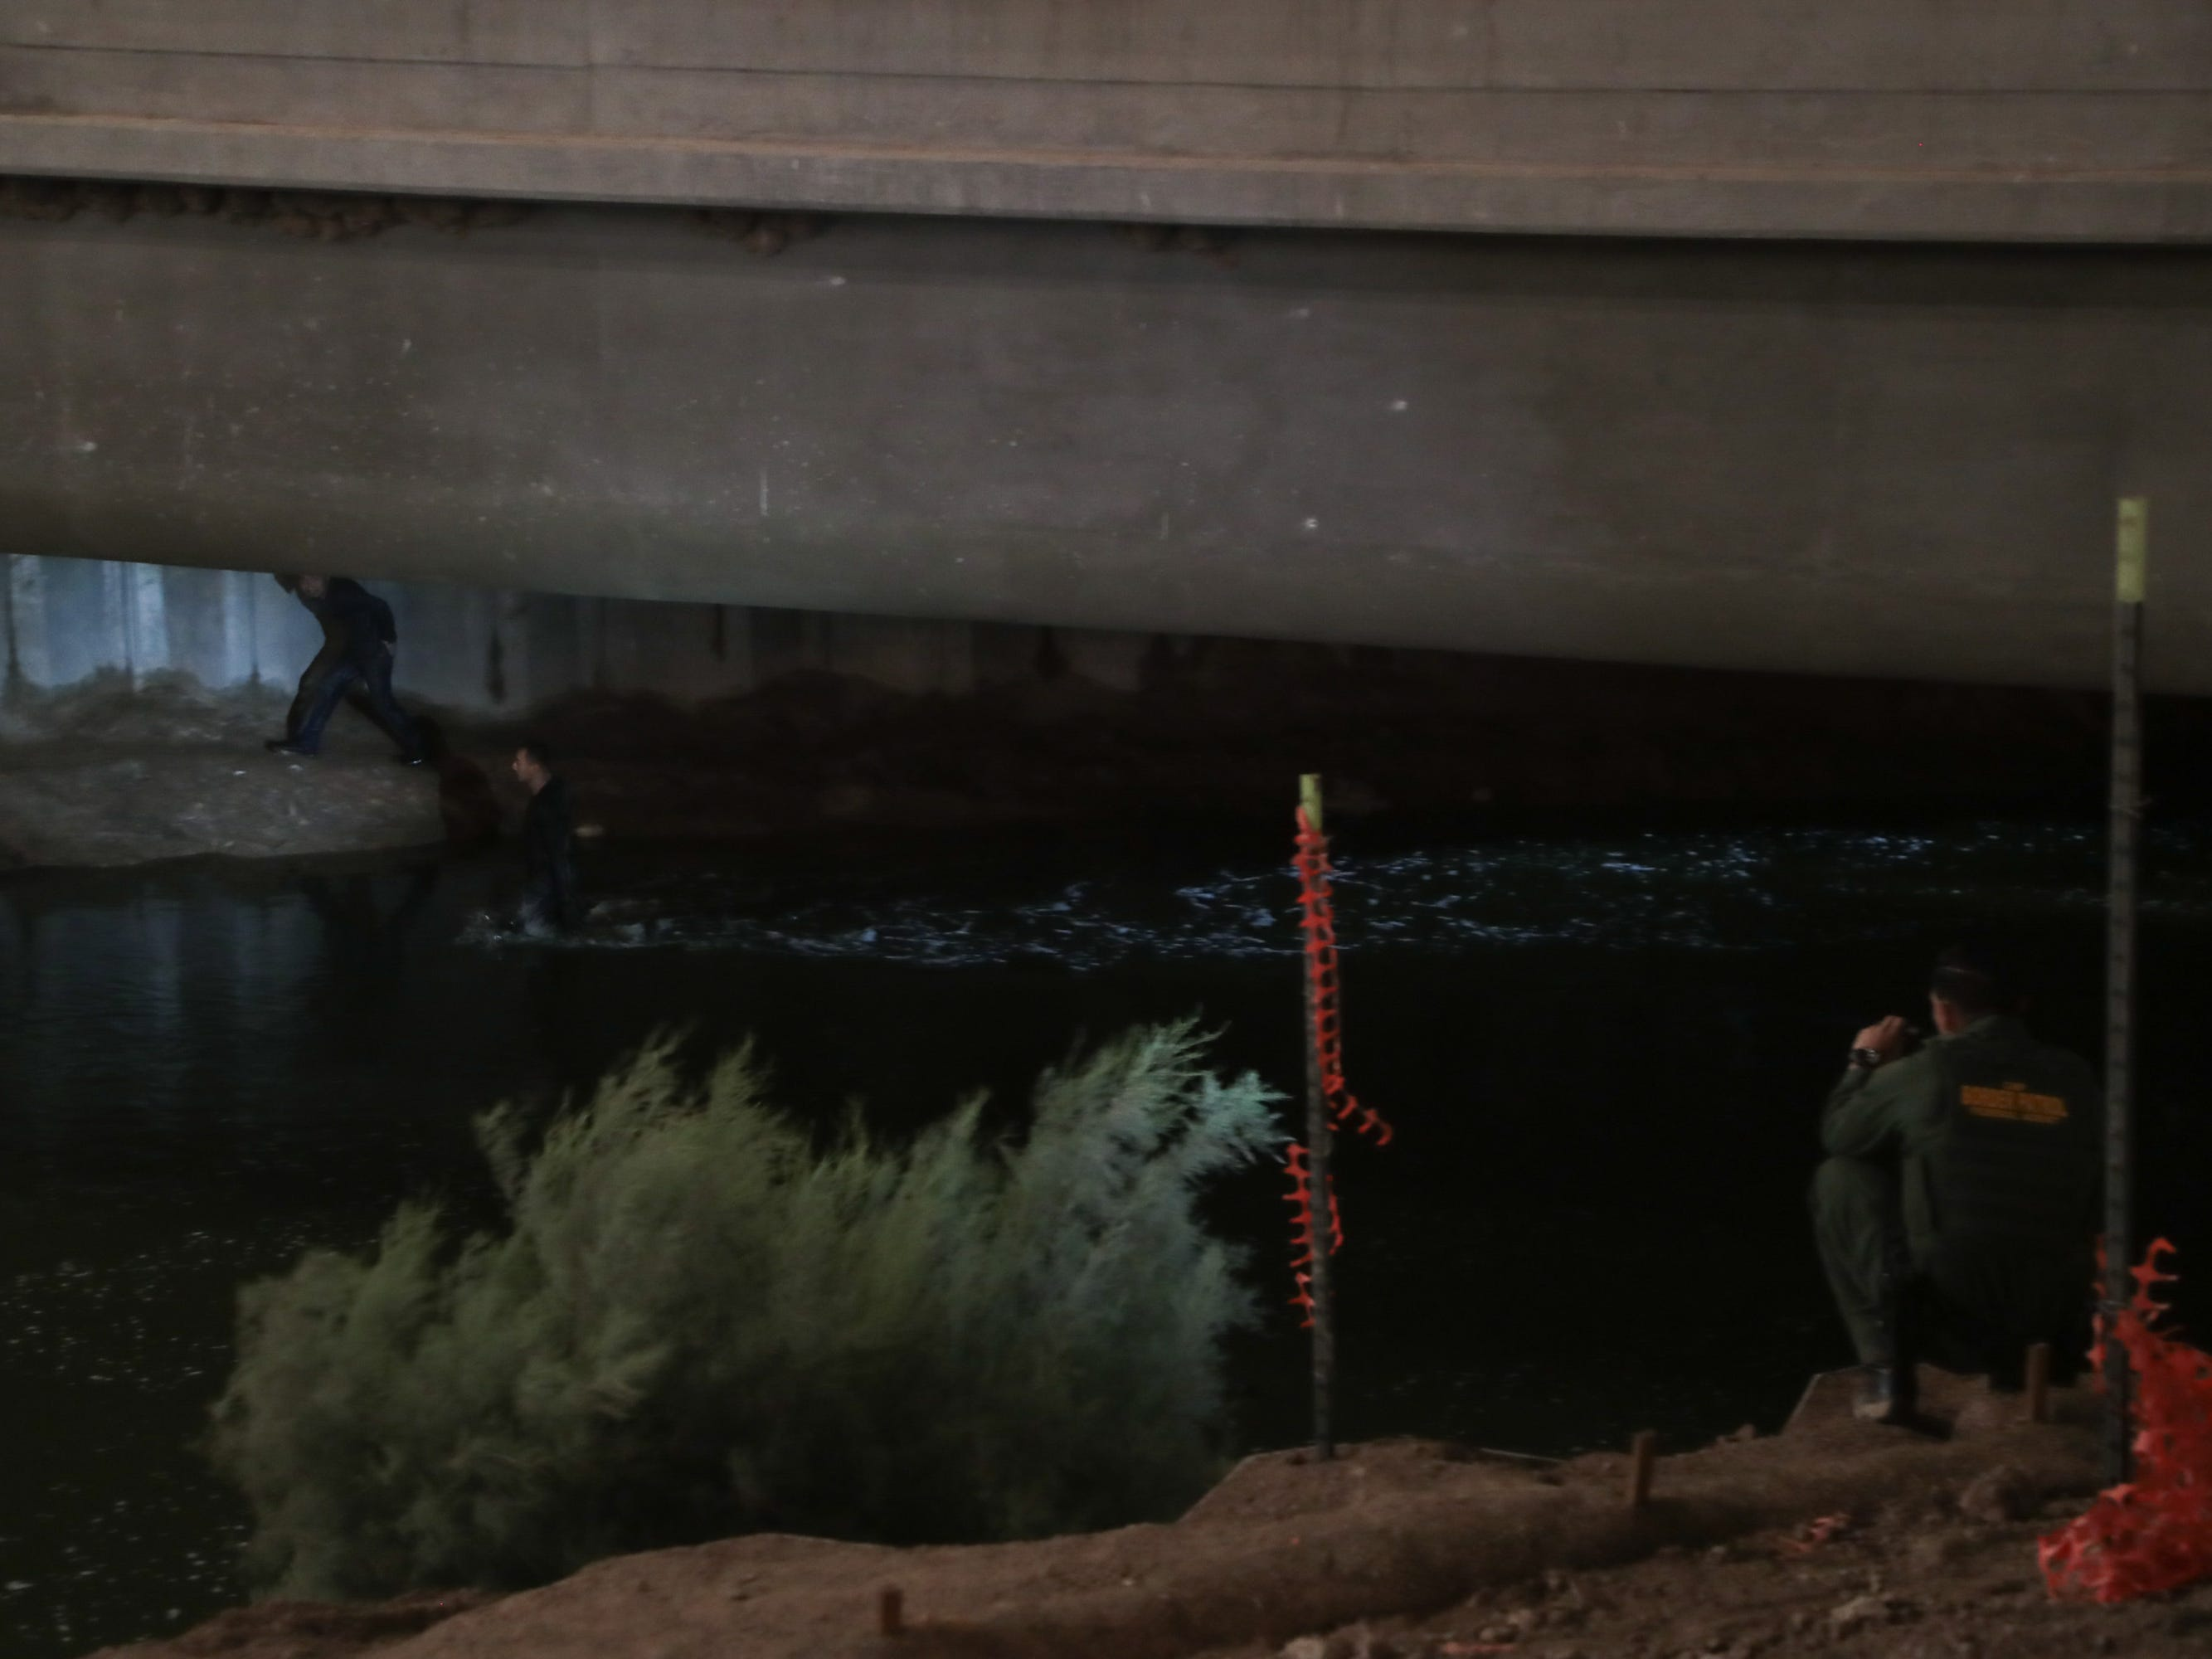 Border Patrol Agent Ruben Sigala shines his flashlight on migrants attempting to cross into the United States through the New River in Calexico on Sept. 19, 2018.